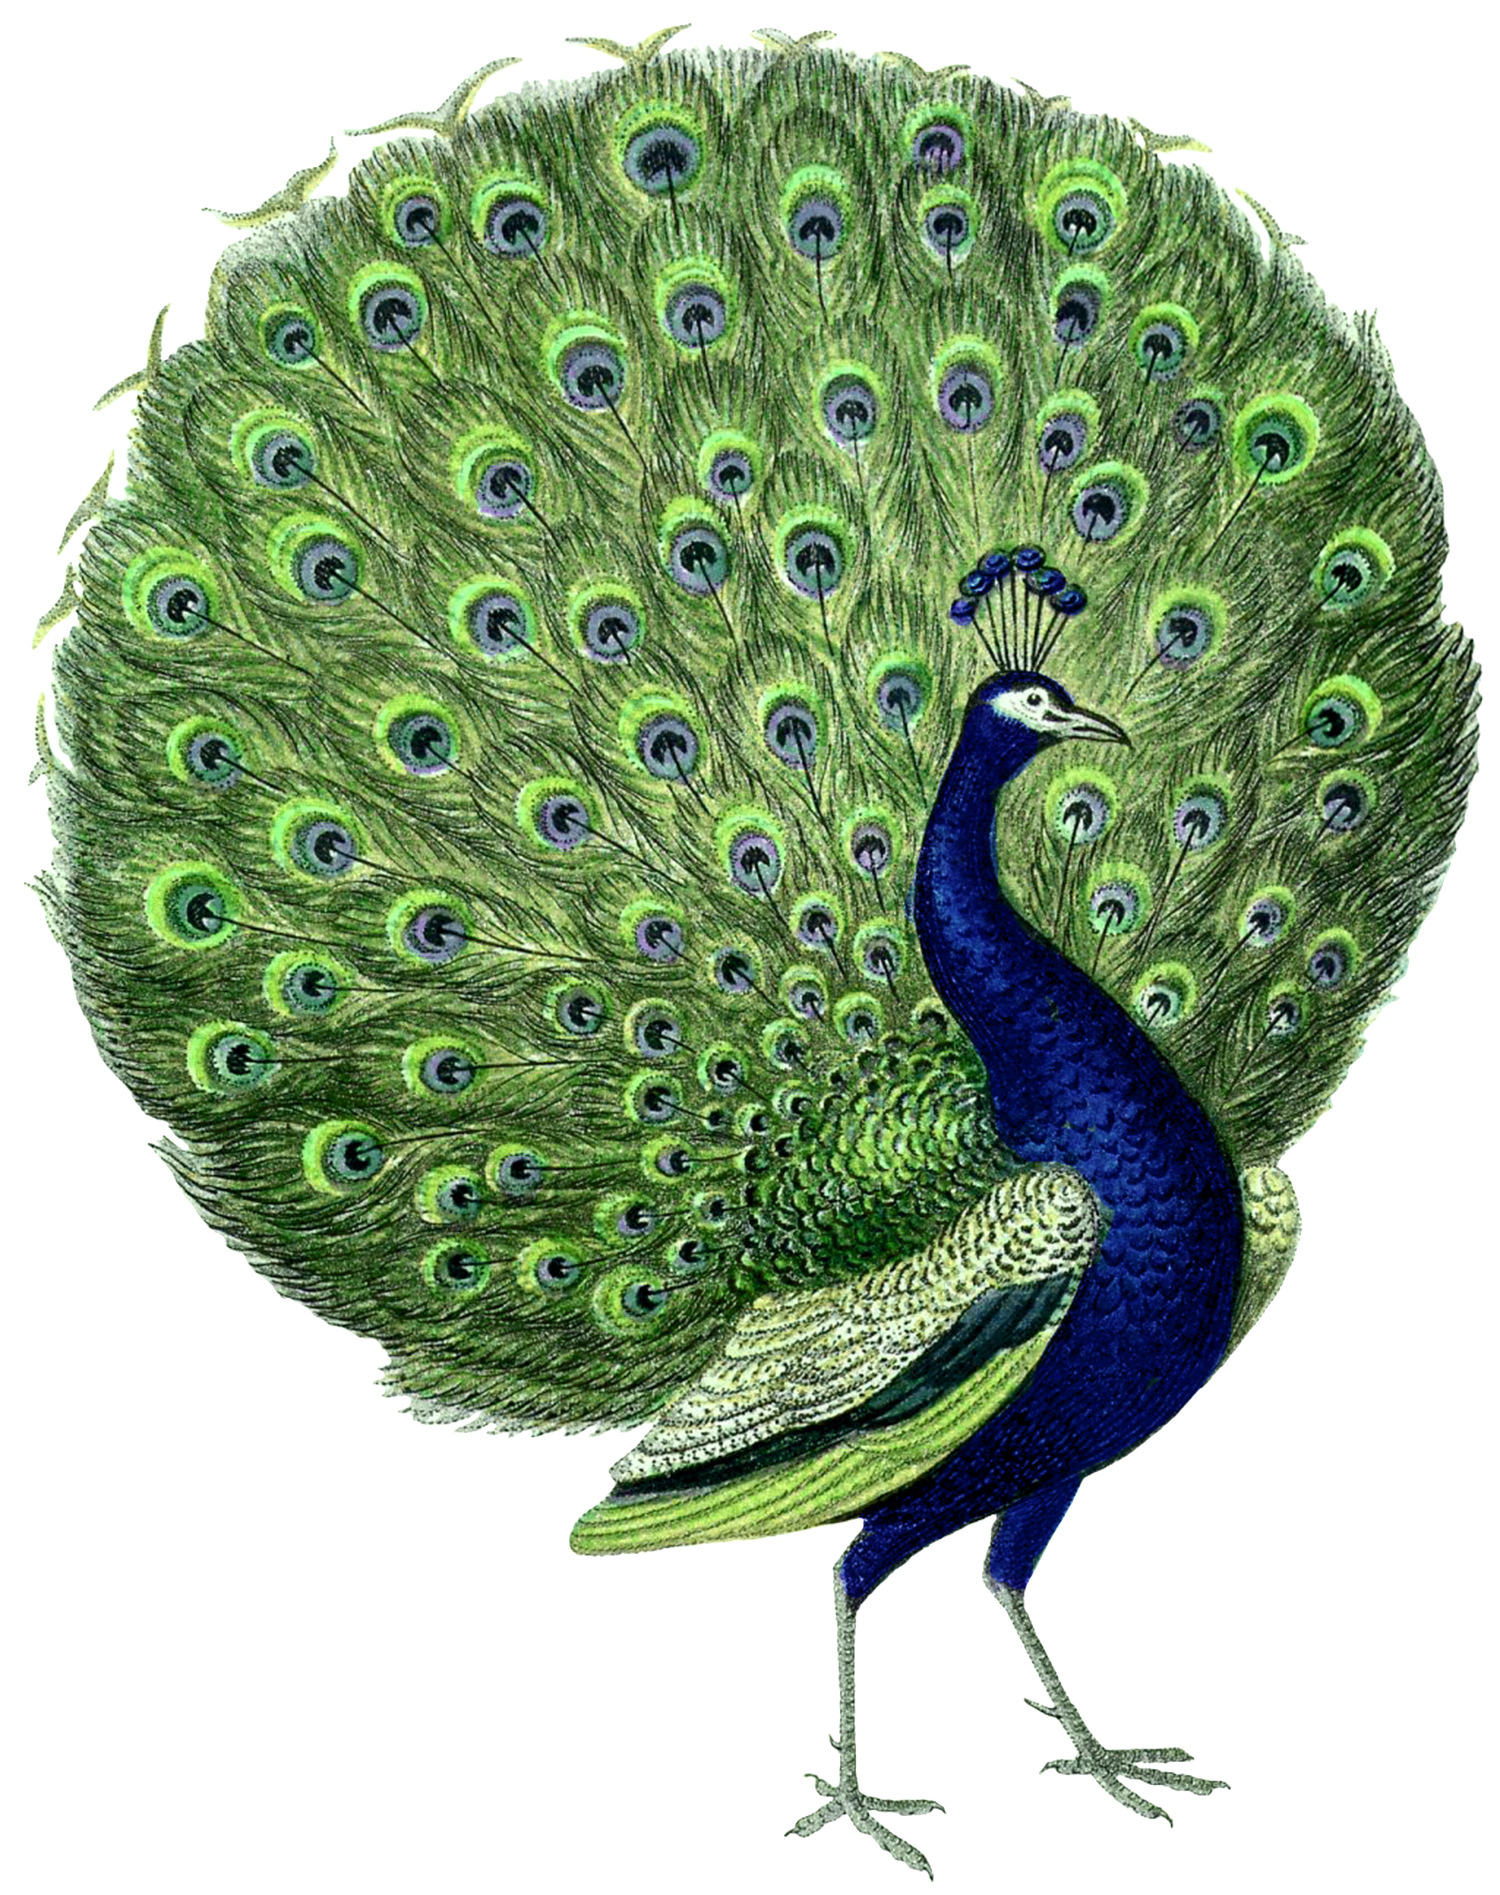 Gorgeous Vintage Peacock Images - The Graphics Fairy